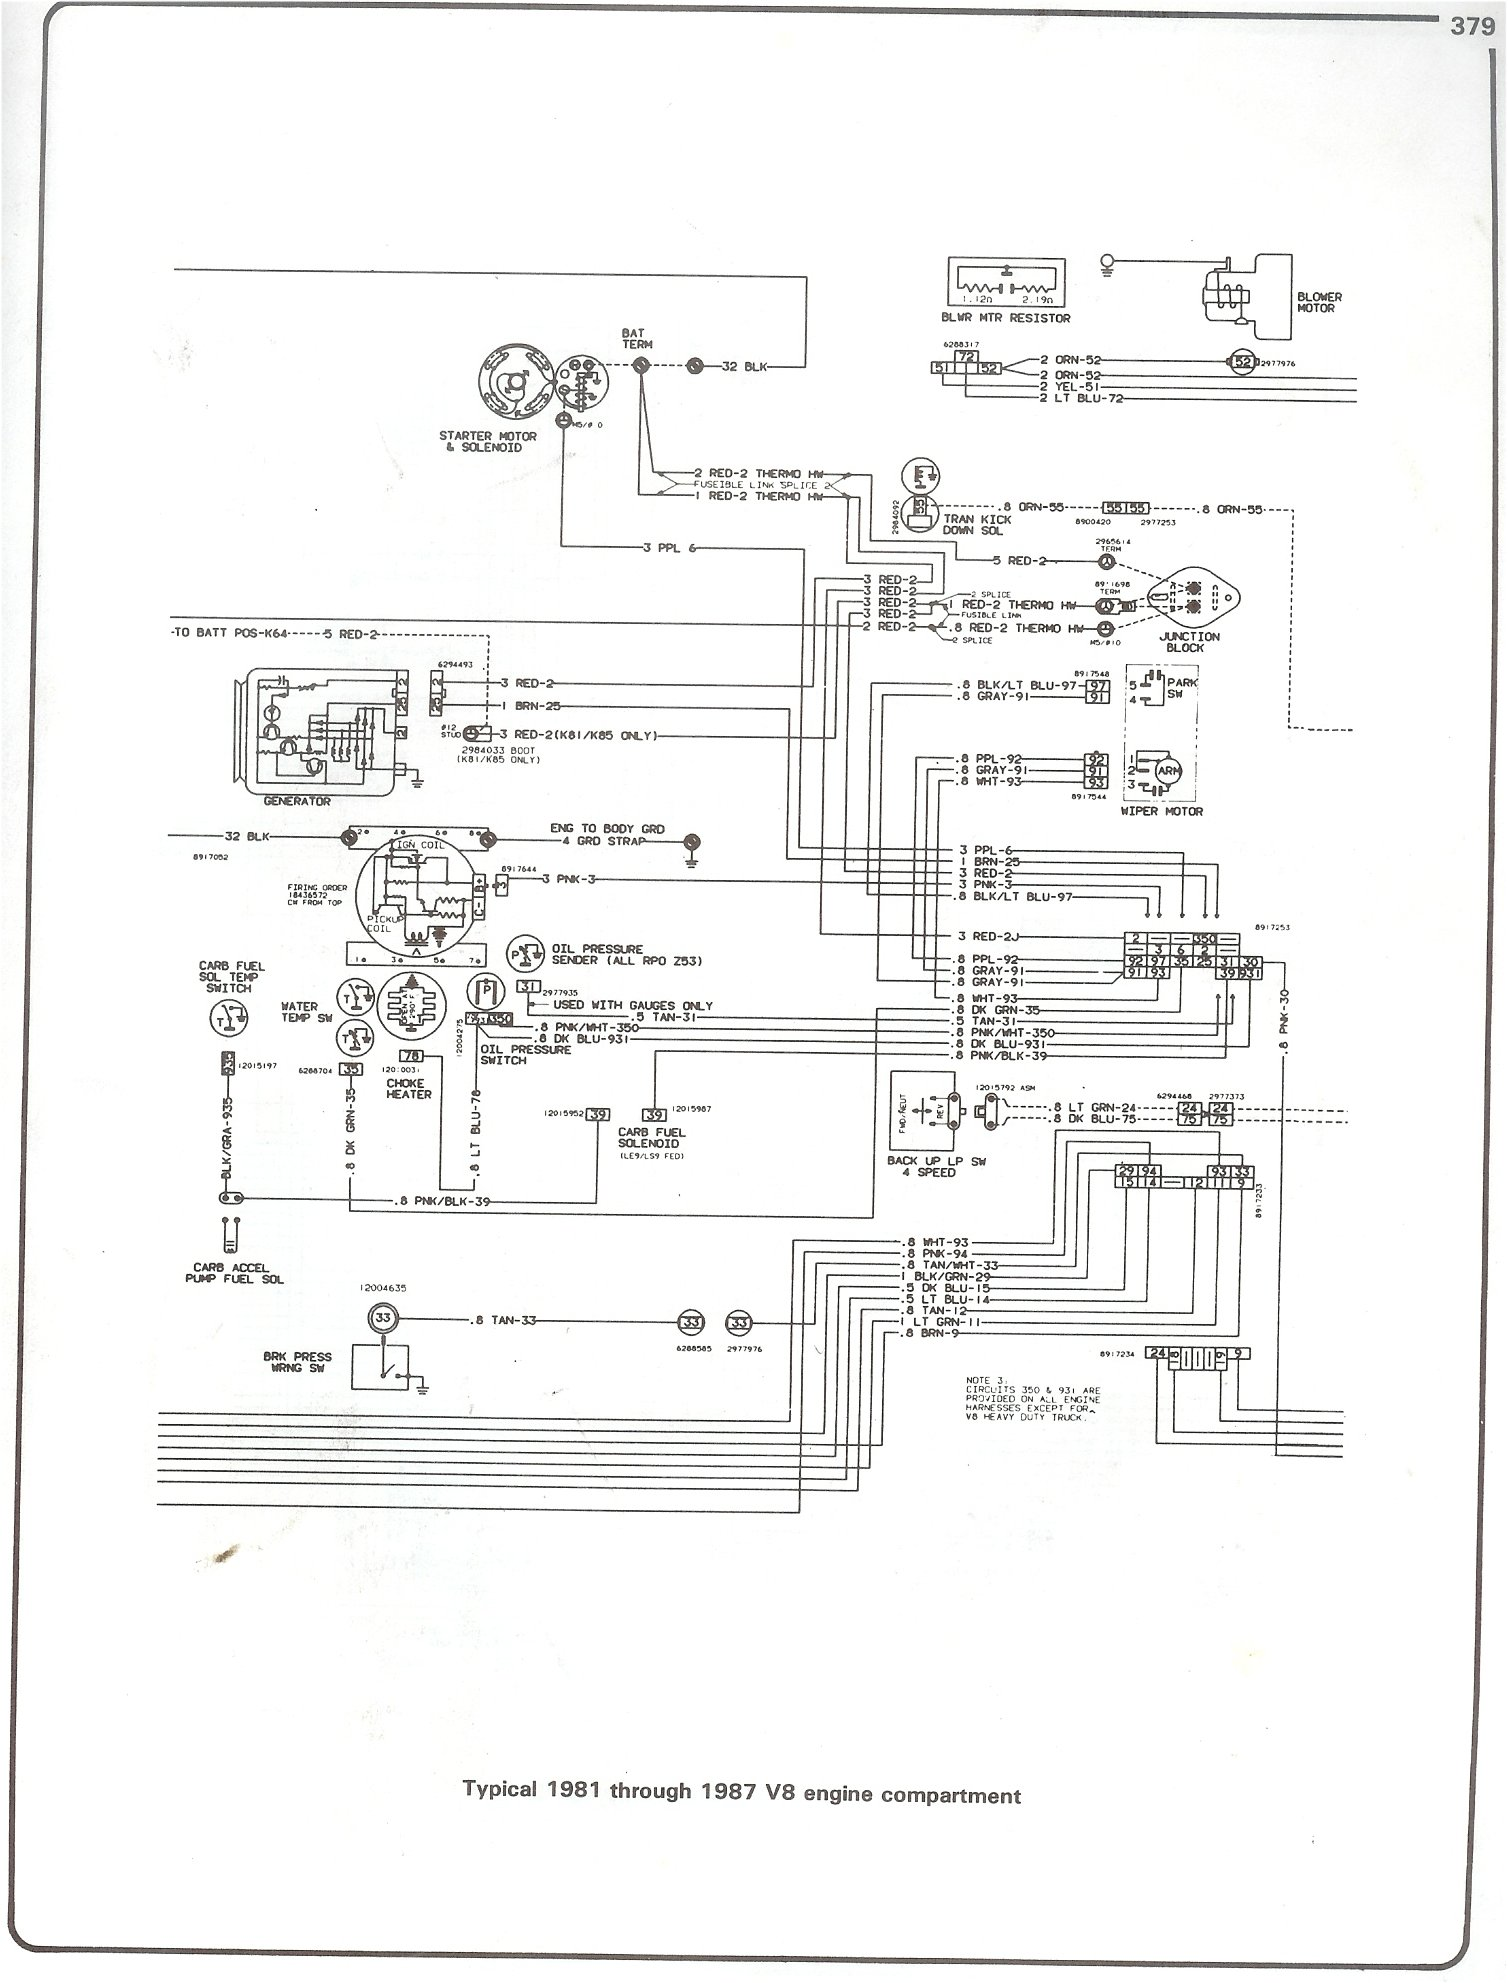 complete 73 87 wiring diagrams rh forum 73 87chevytrucks com 1979 chevy truck wiring diagram 1978 chevy truck wiring diagram